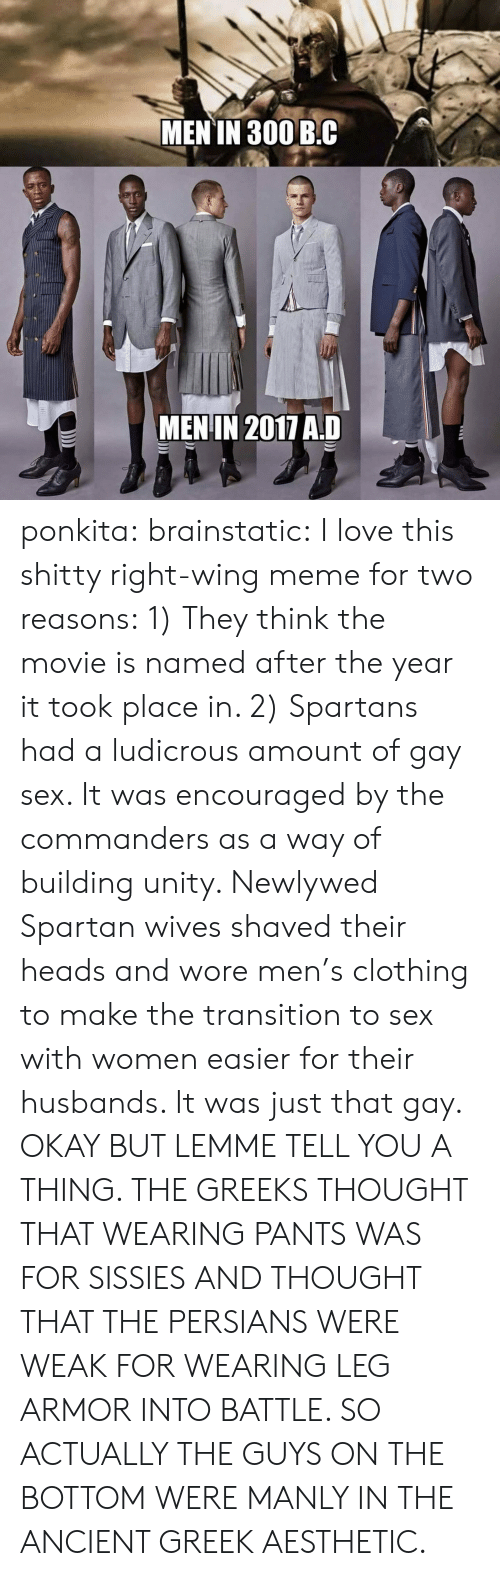 spartans: MEN TN 300 B.C  MENIN 2017 AD ponkita:  brainstatic:  I love this shitty right-wing meme for two reasons:  1) They think the movie is named after the year it took place in.   2) Spartans had a ludicrous amount of gay sex. It was encouraged by the commanders as a way of building unity. Newlywed Spartan wives shaved their heads and wore men's clothing to make the transition to sex with women easier for their husbands. It was just that gay.  OKAY BUT LEMME TELL YOU A THING. THE GREEKS THOUGHT THAT WEARING PANTS WAS FOR SISSIES AND THOUGHT THAT THE PERSIANS WERE WEAK FOR WEARING LEG ARMOR INTO BATTLE. SO ACTUALLY THE GUYS ON THE BOTTOM WERE MANLY IN THE ANCIENT GREEK AESTHETIC.